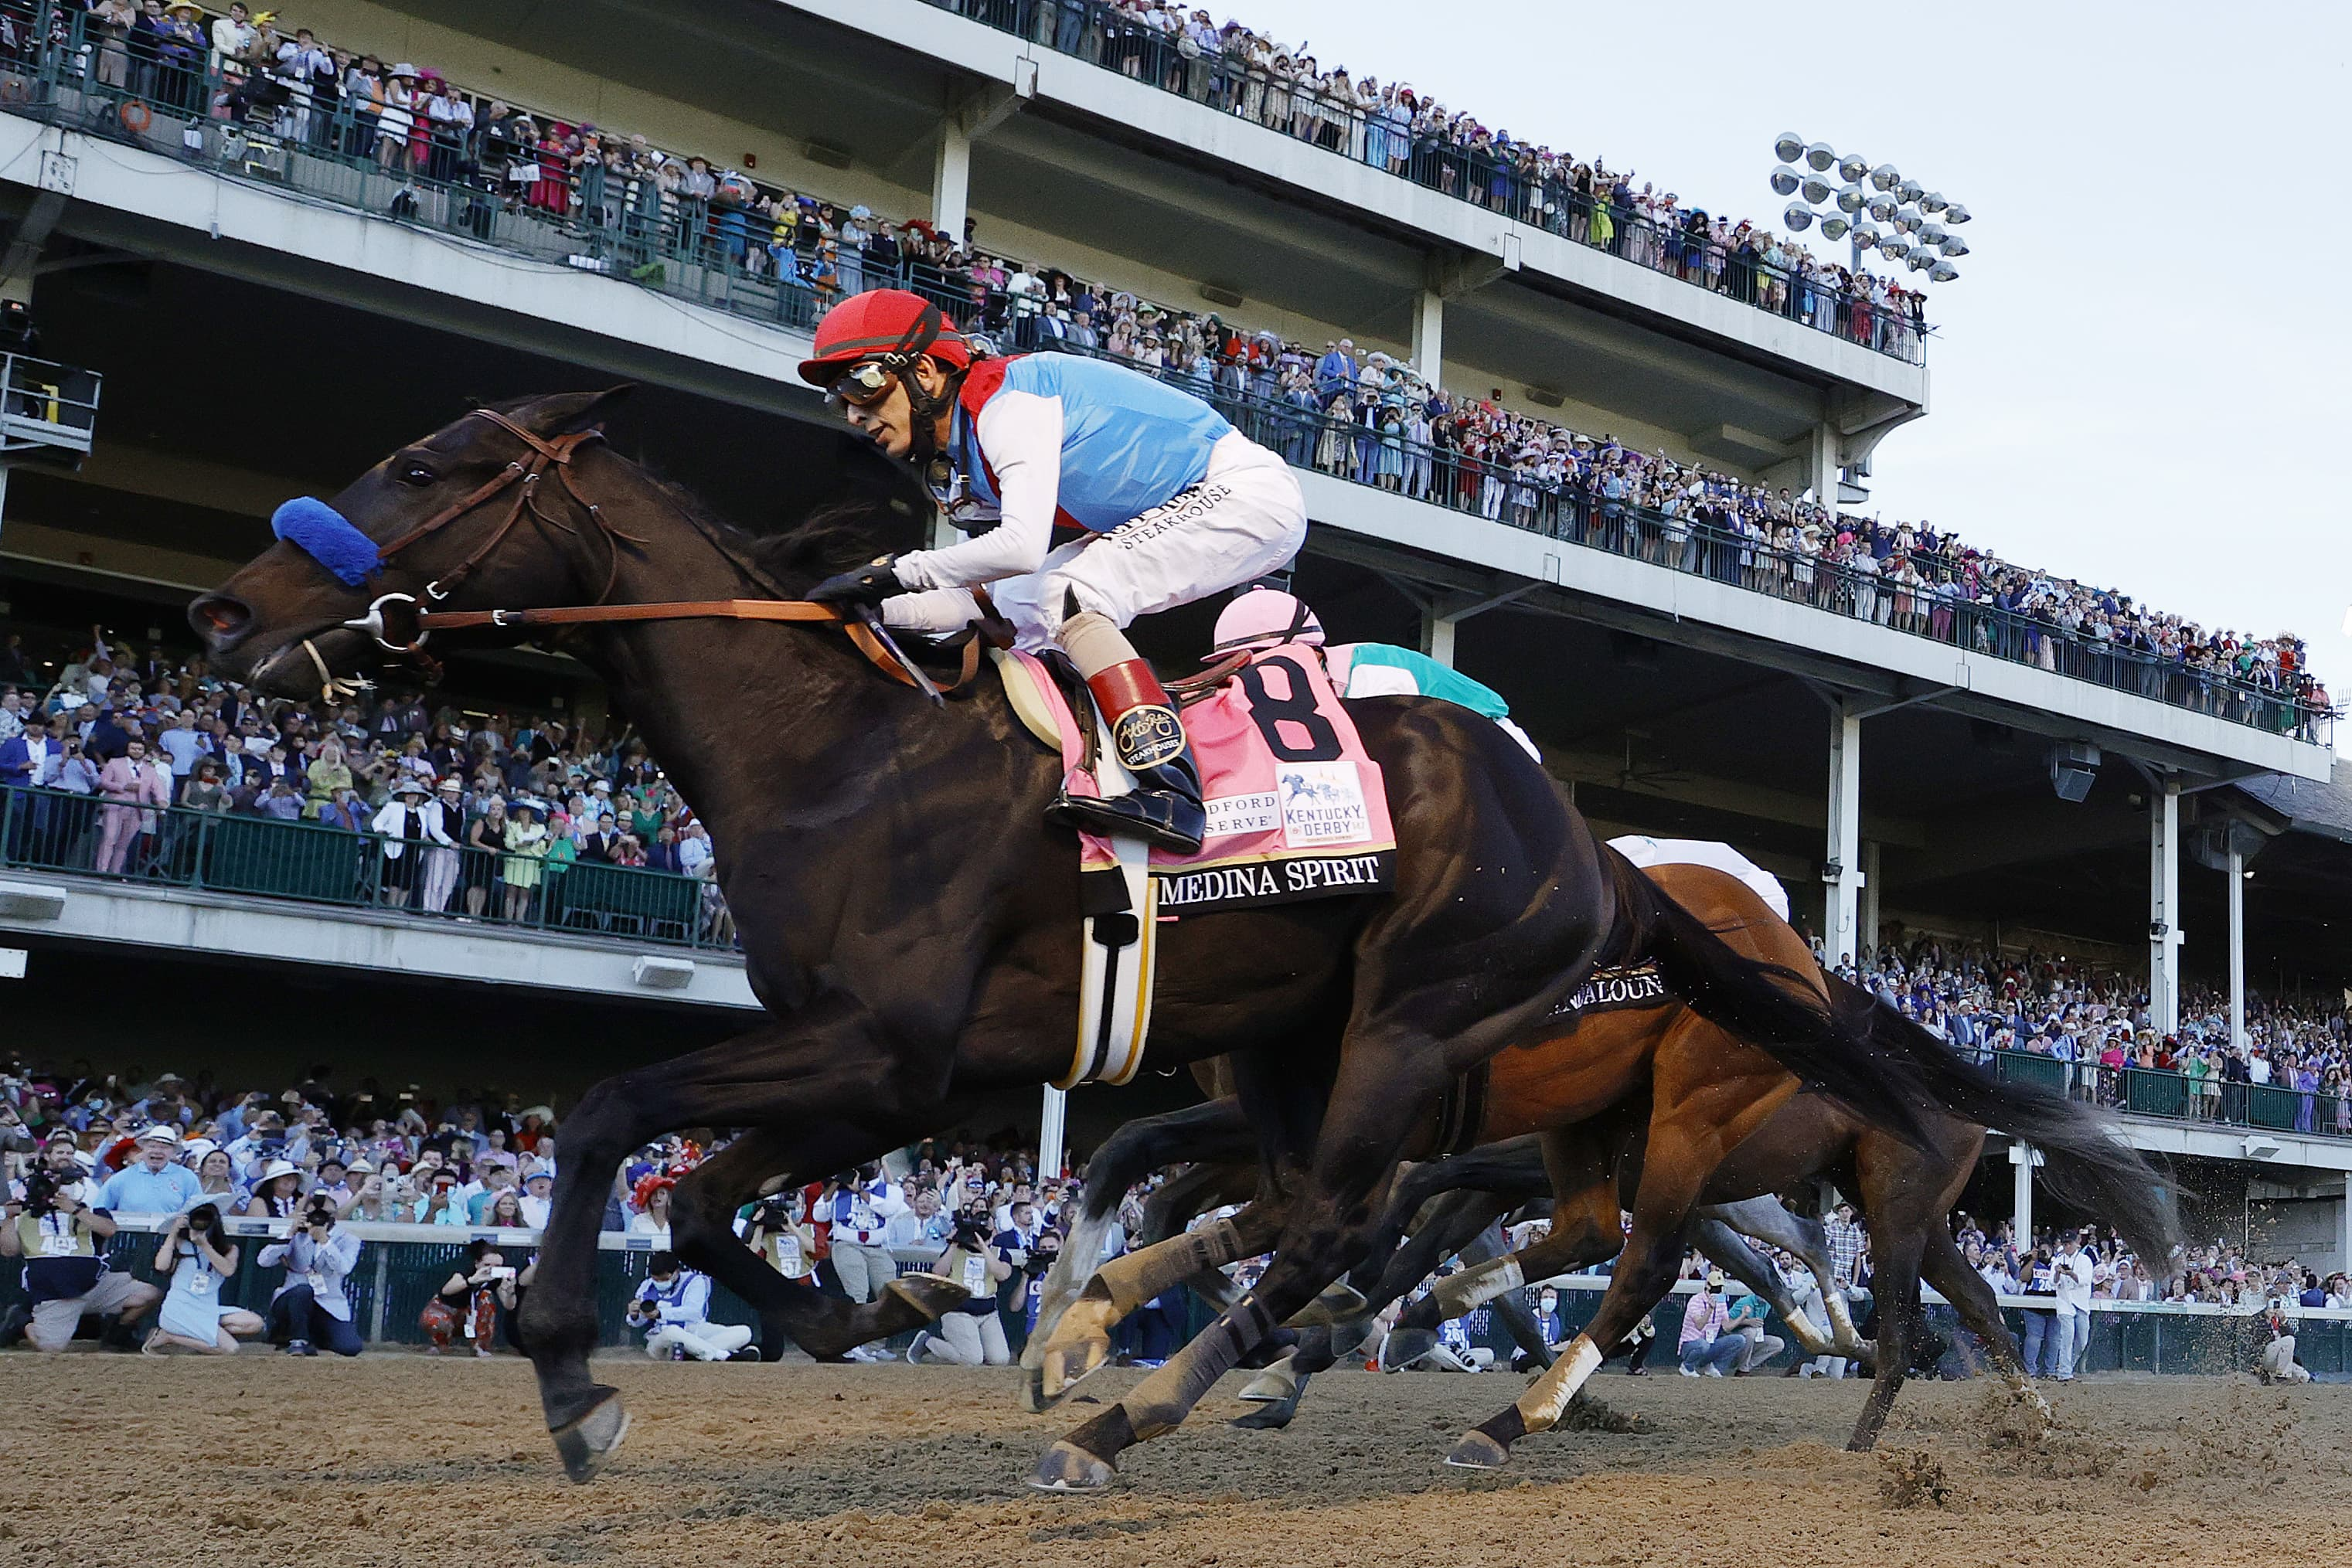 Medina Spirit passes drug tests and is licensed to operate in Preakness